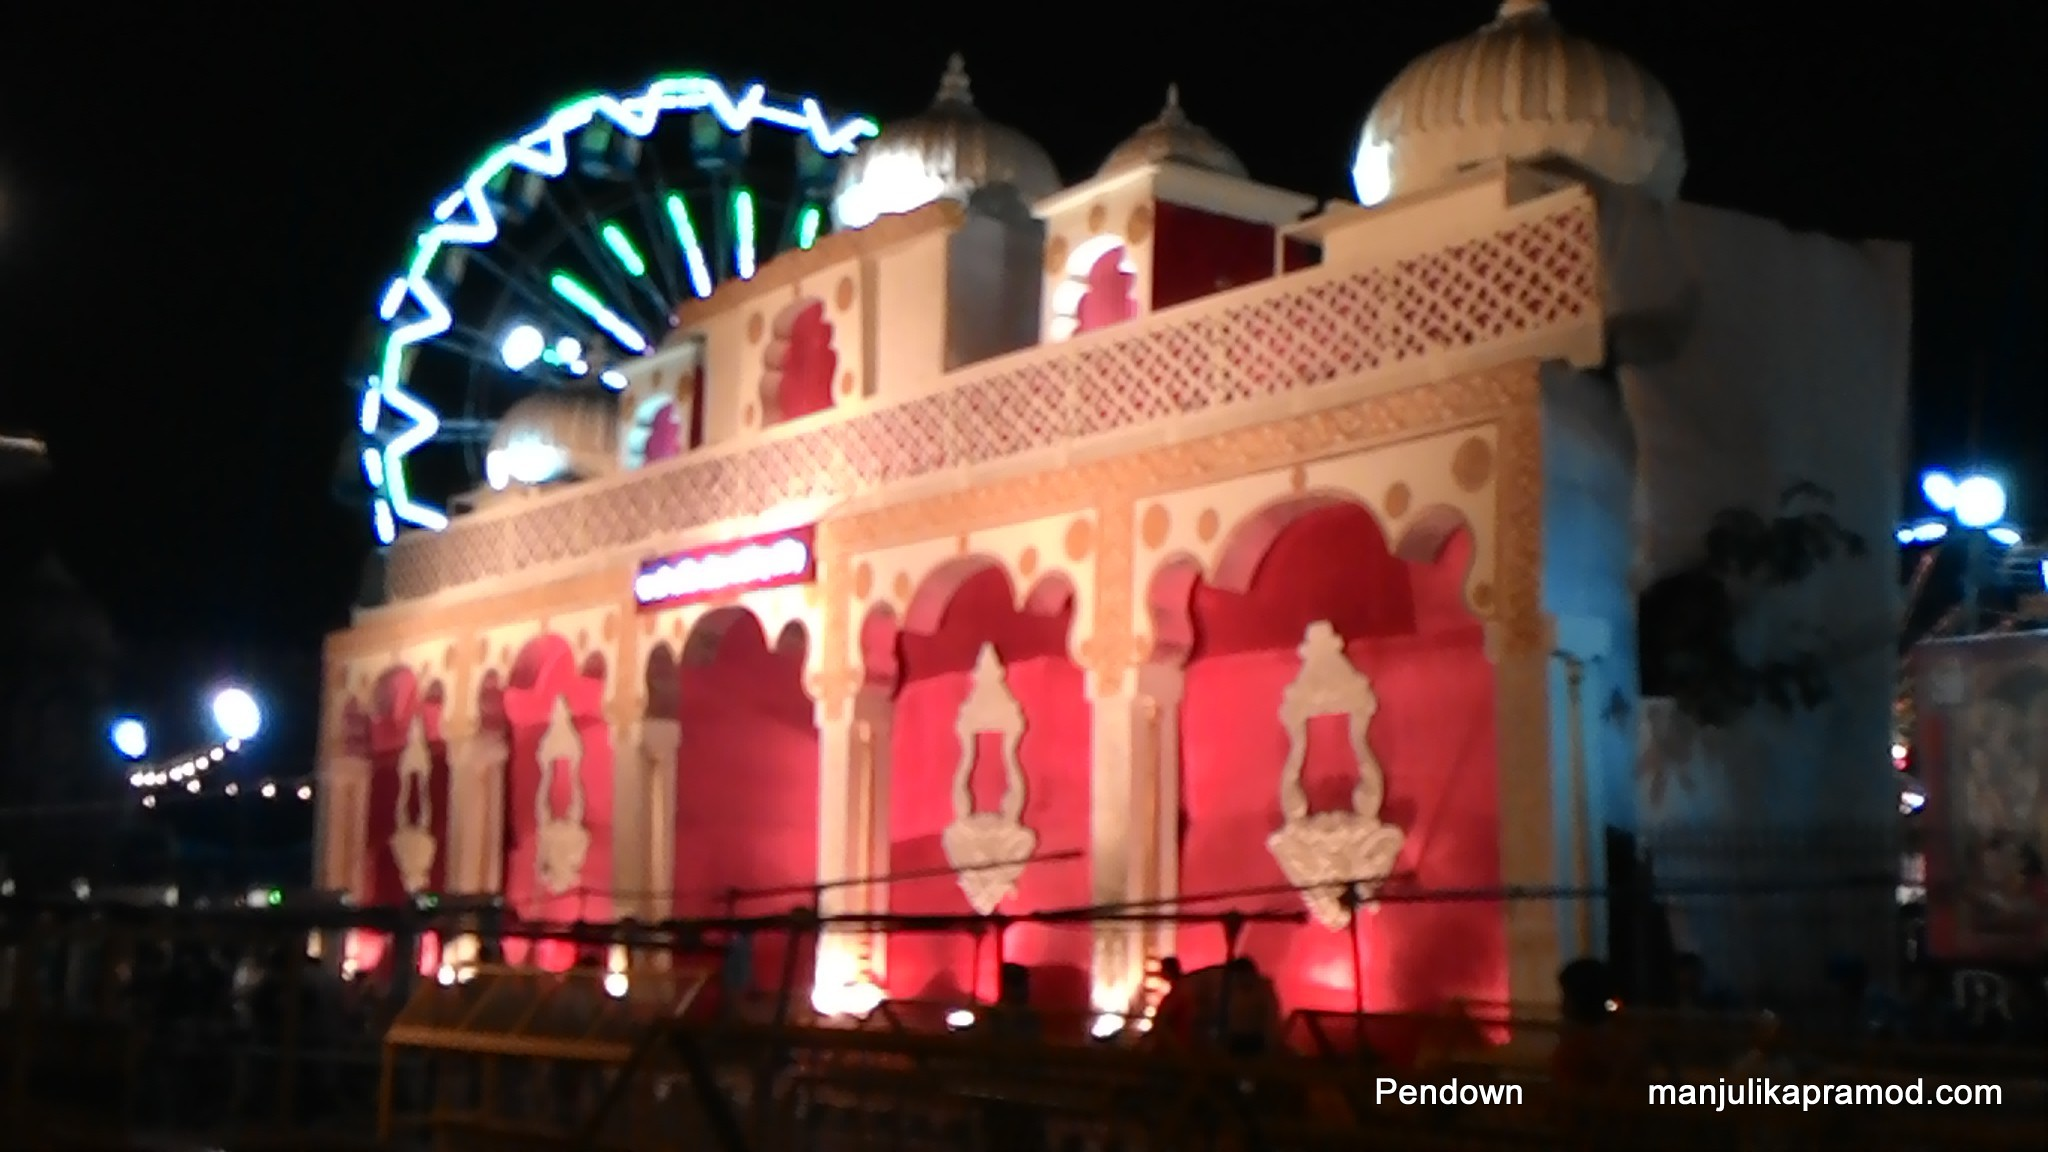 Red Fort, Nav Shri Dharmik Lila Committee, Dusshera, Chandni Chowk, Food, Festival, New Delhi